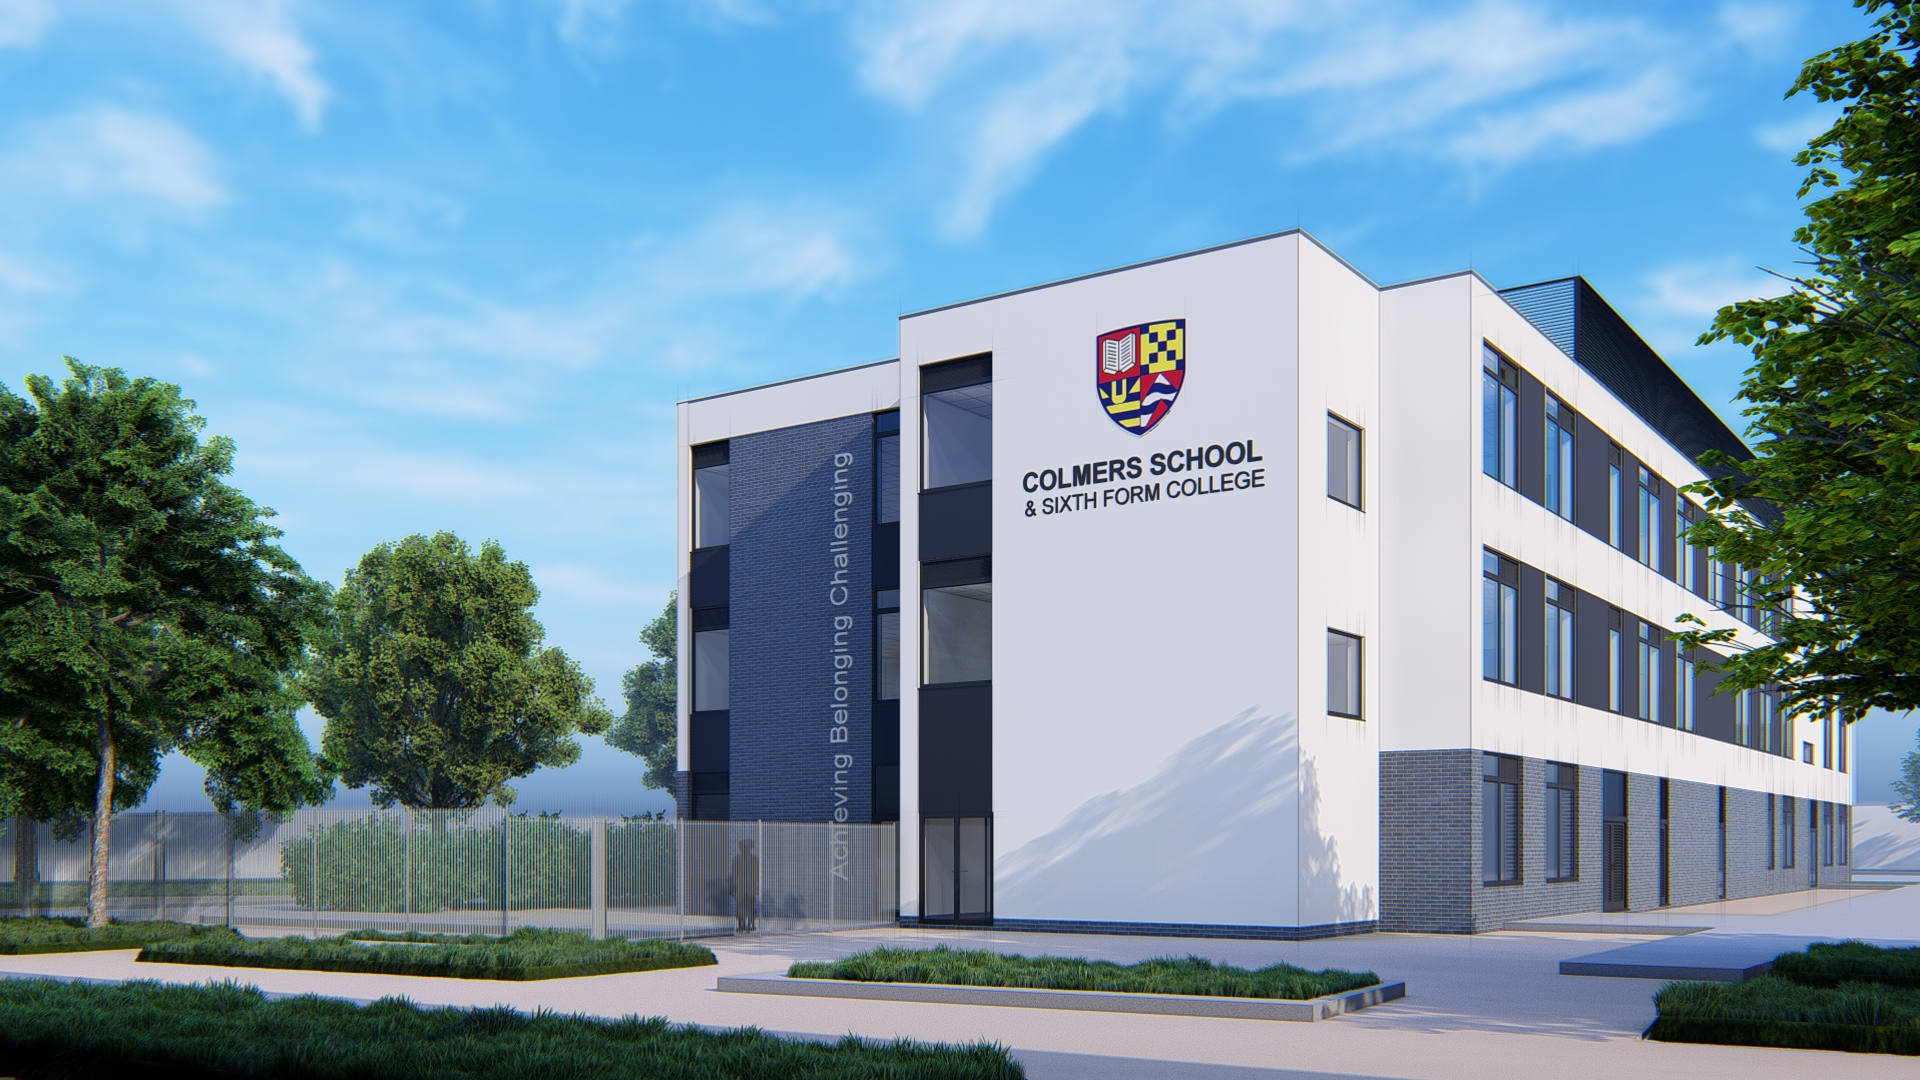 This much needed replacement of one out dated school building on the site will offer modern facilities providing life long benefits for pupils and staff in